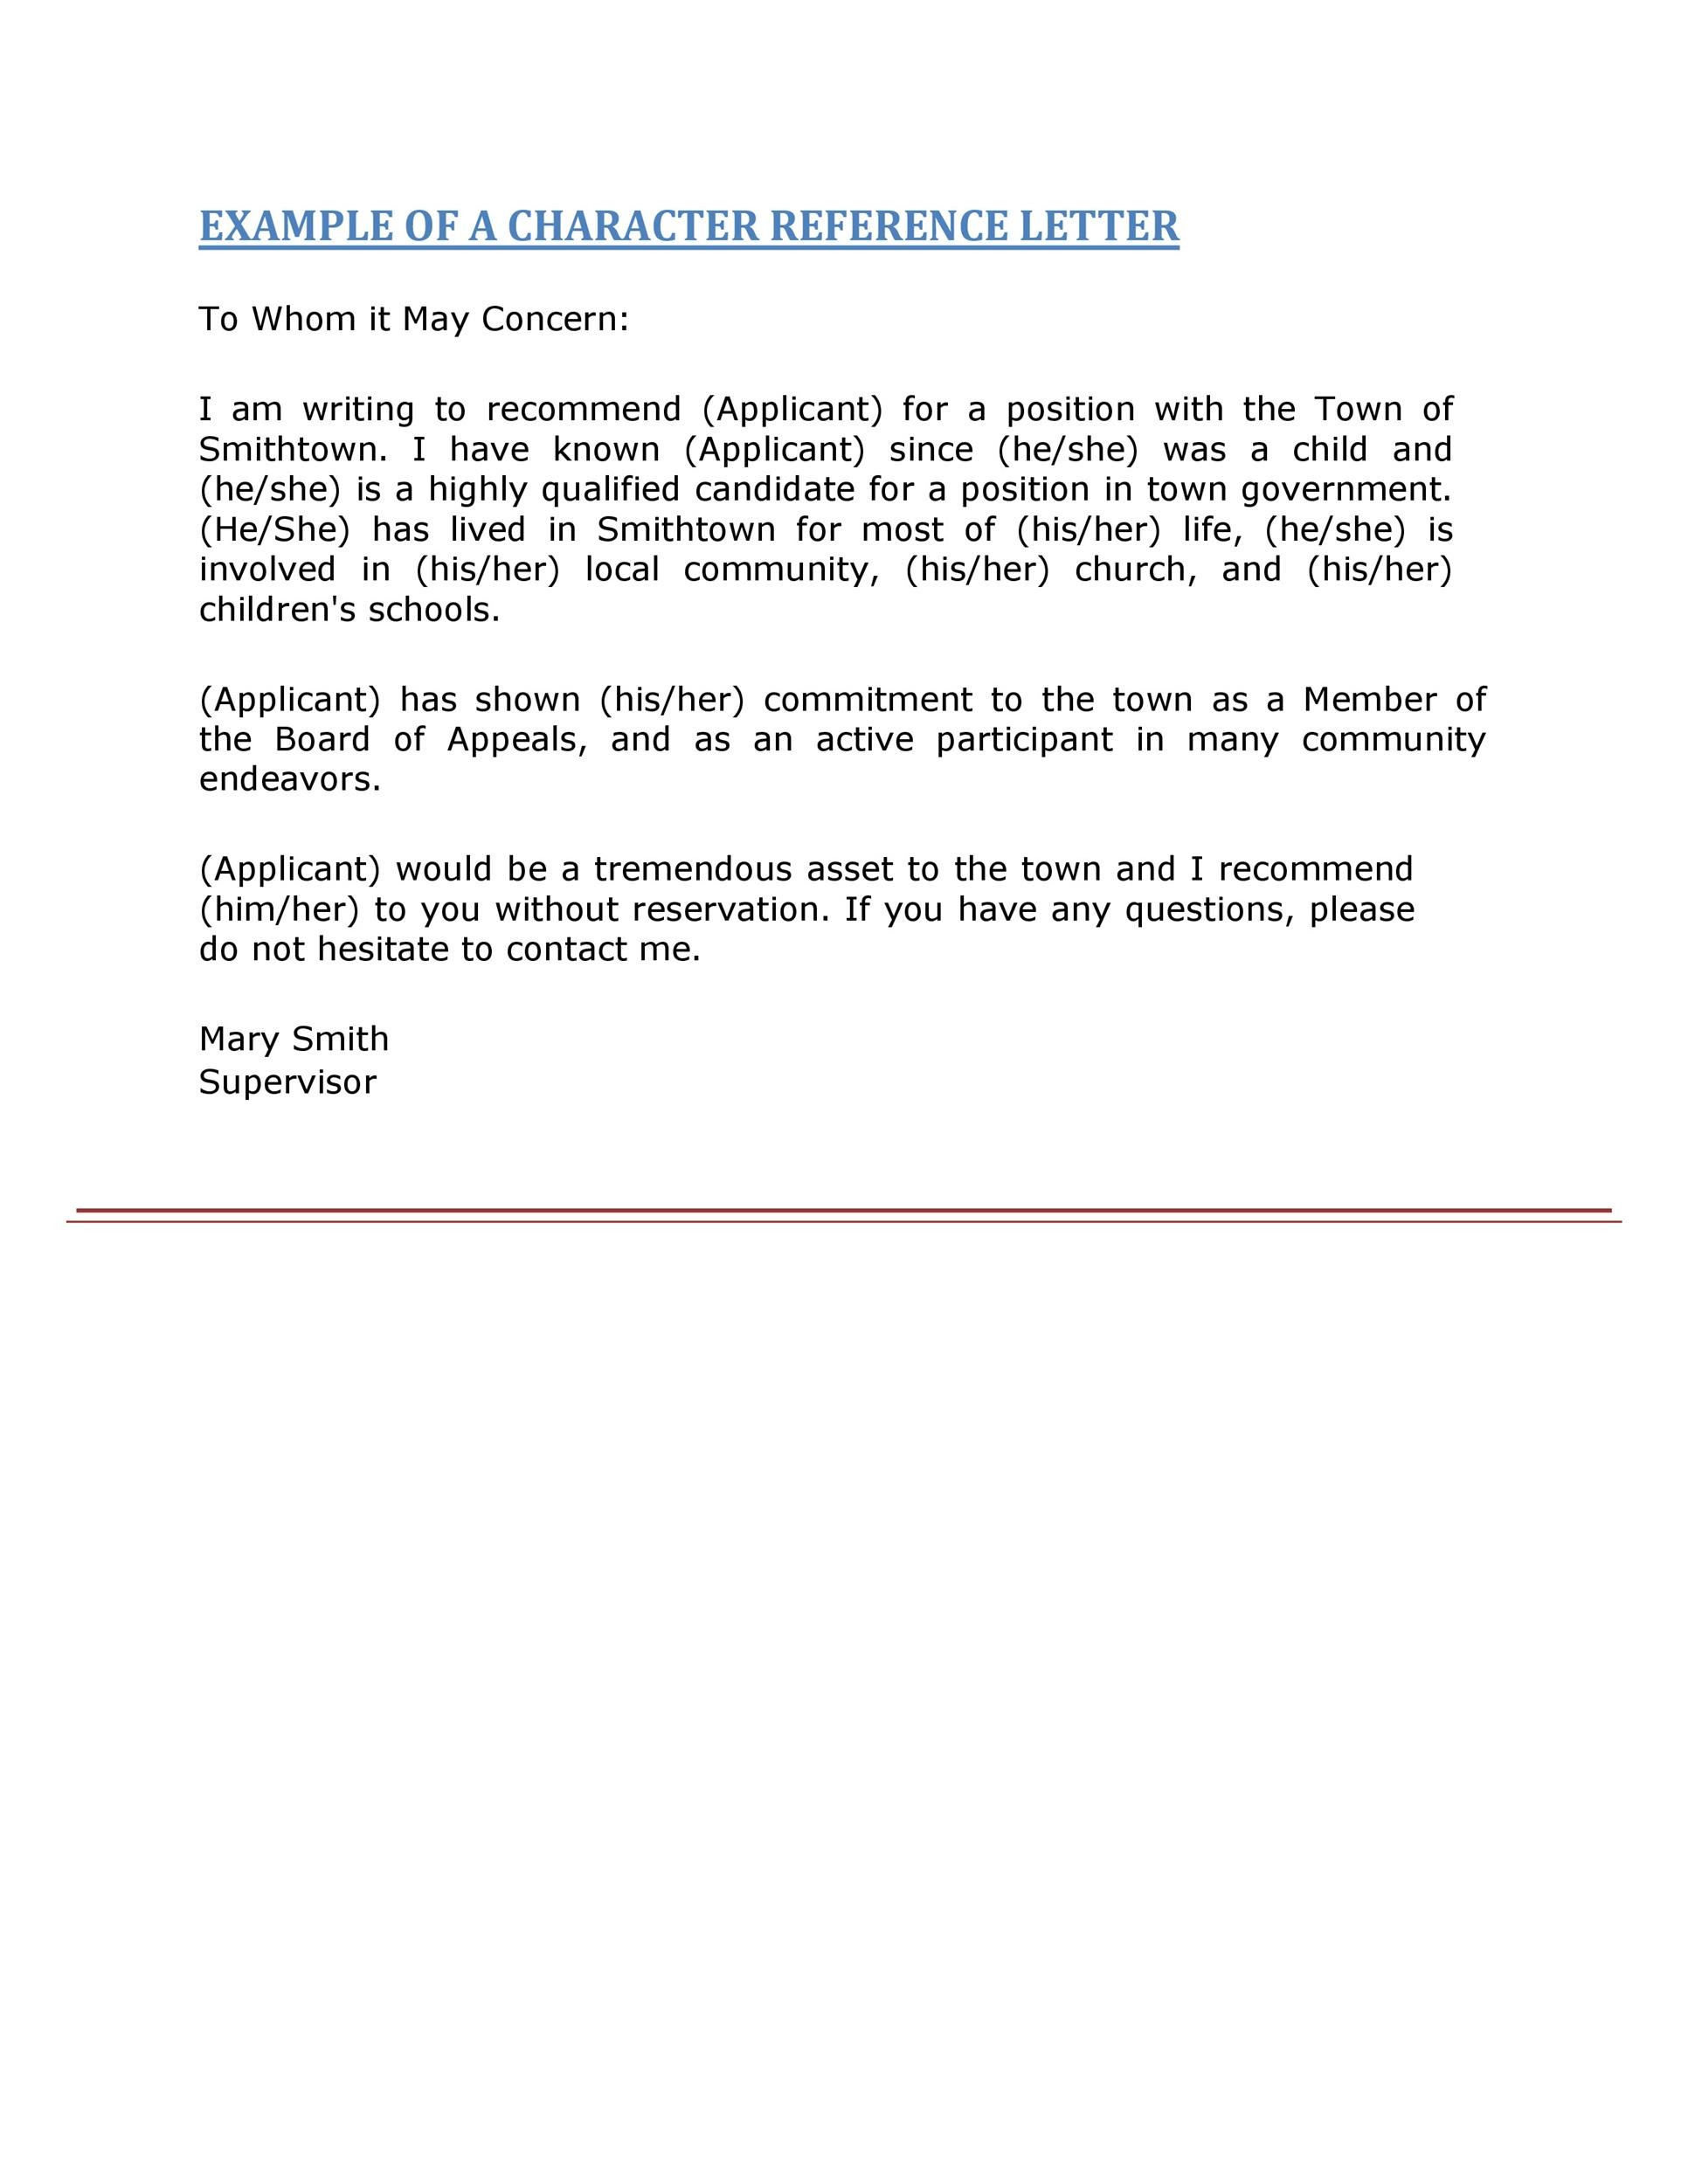 50 Best Recommendation Letters For Employee From Manager